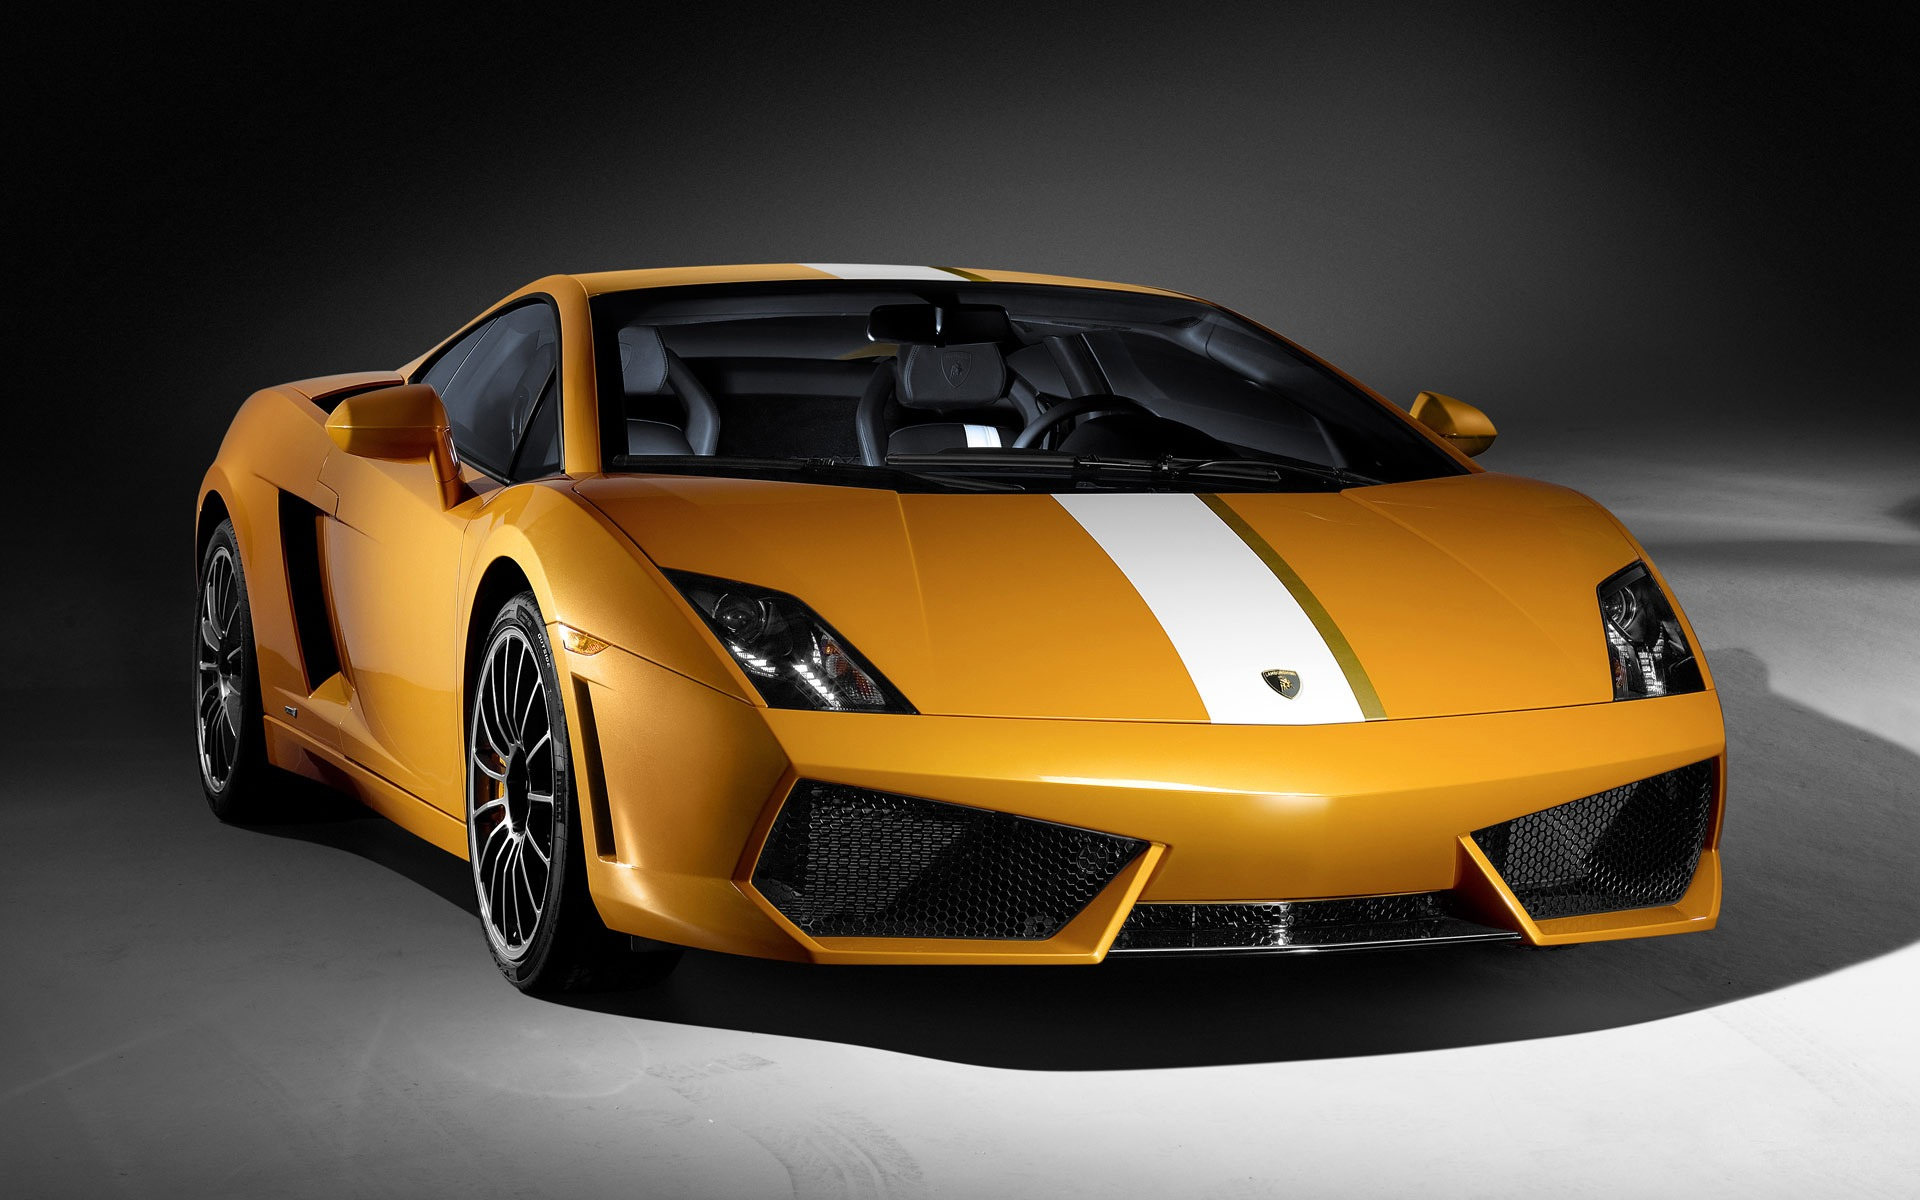 Charmant Lamborghini Gallardo LP550 2 Wallpaper Lamborghini Cars Wallpapers